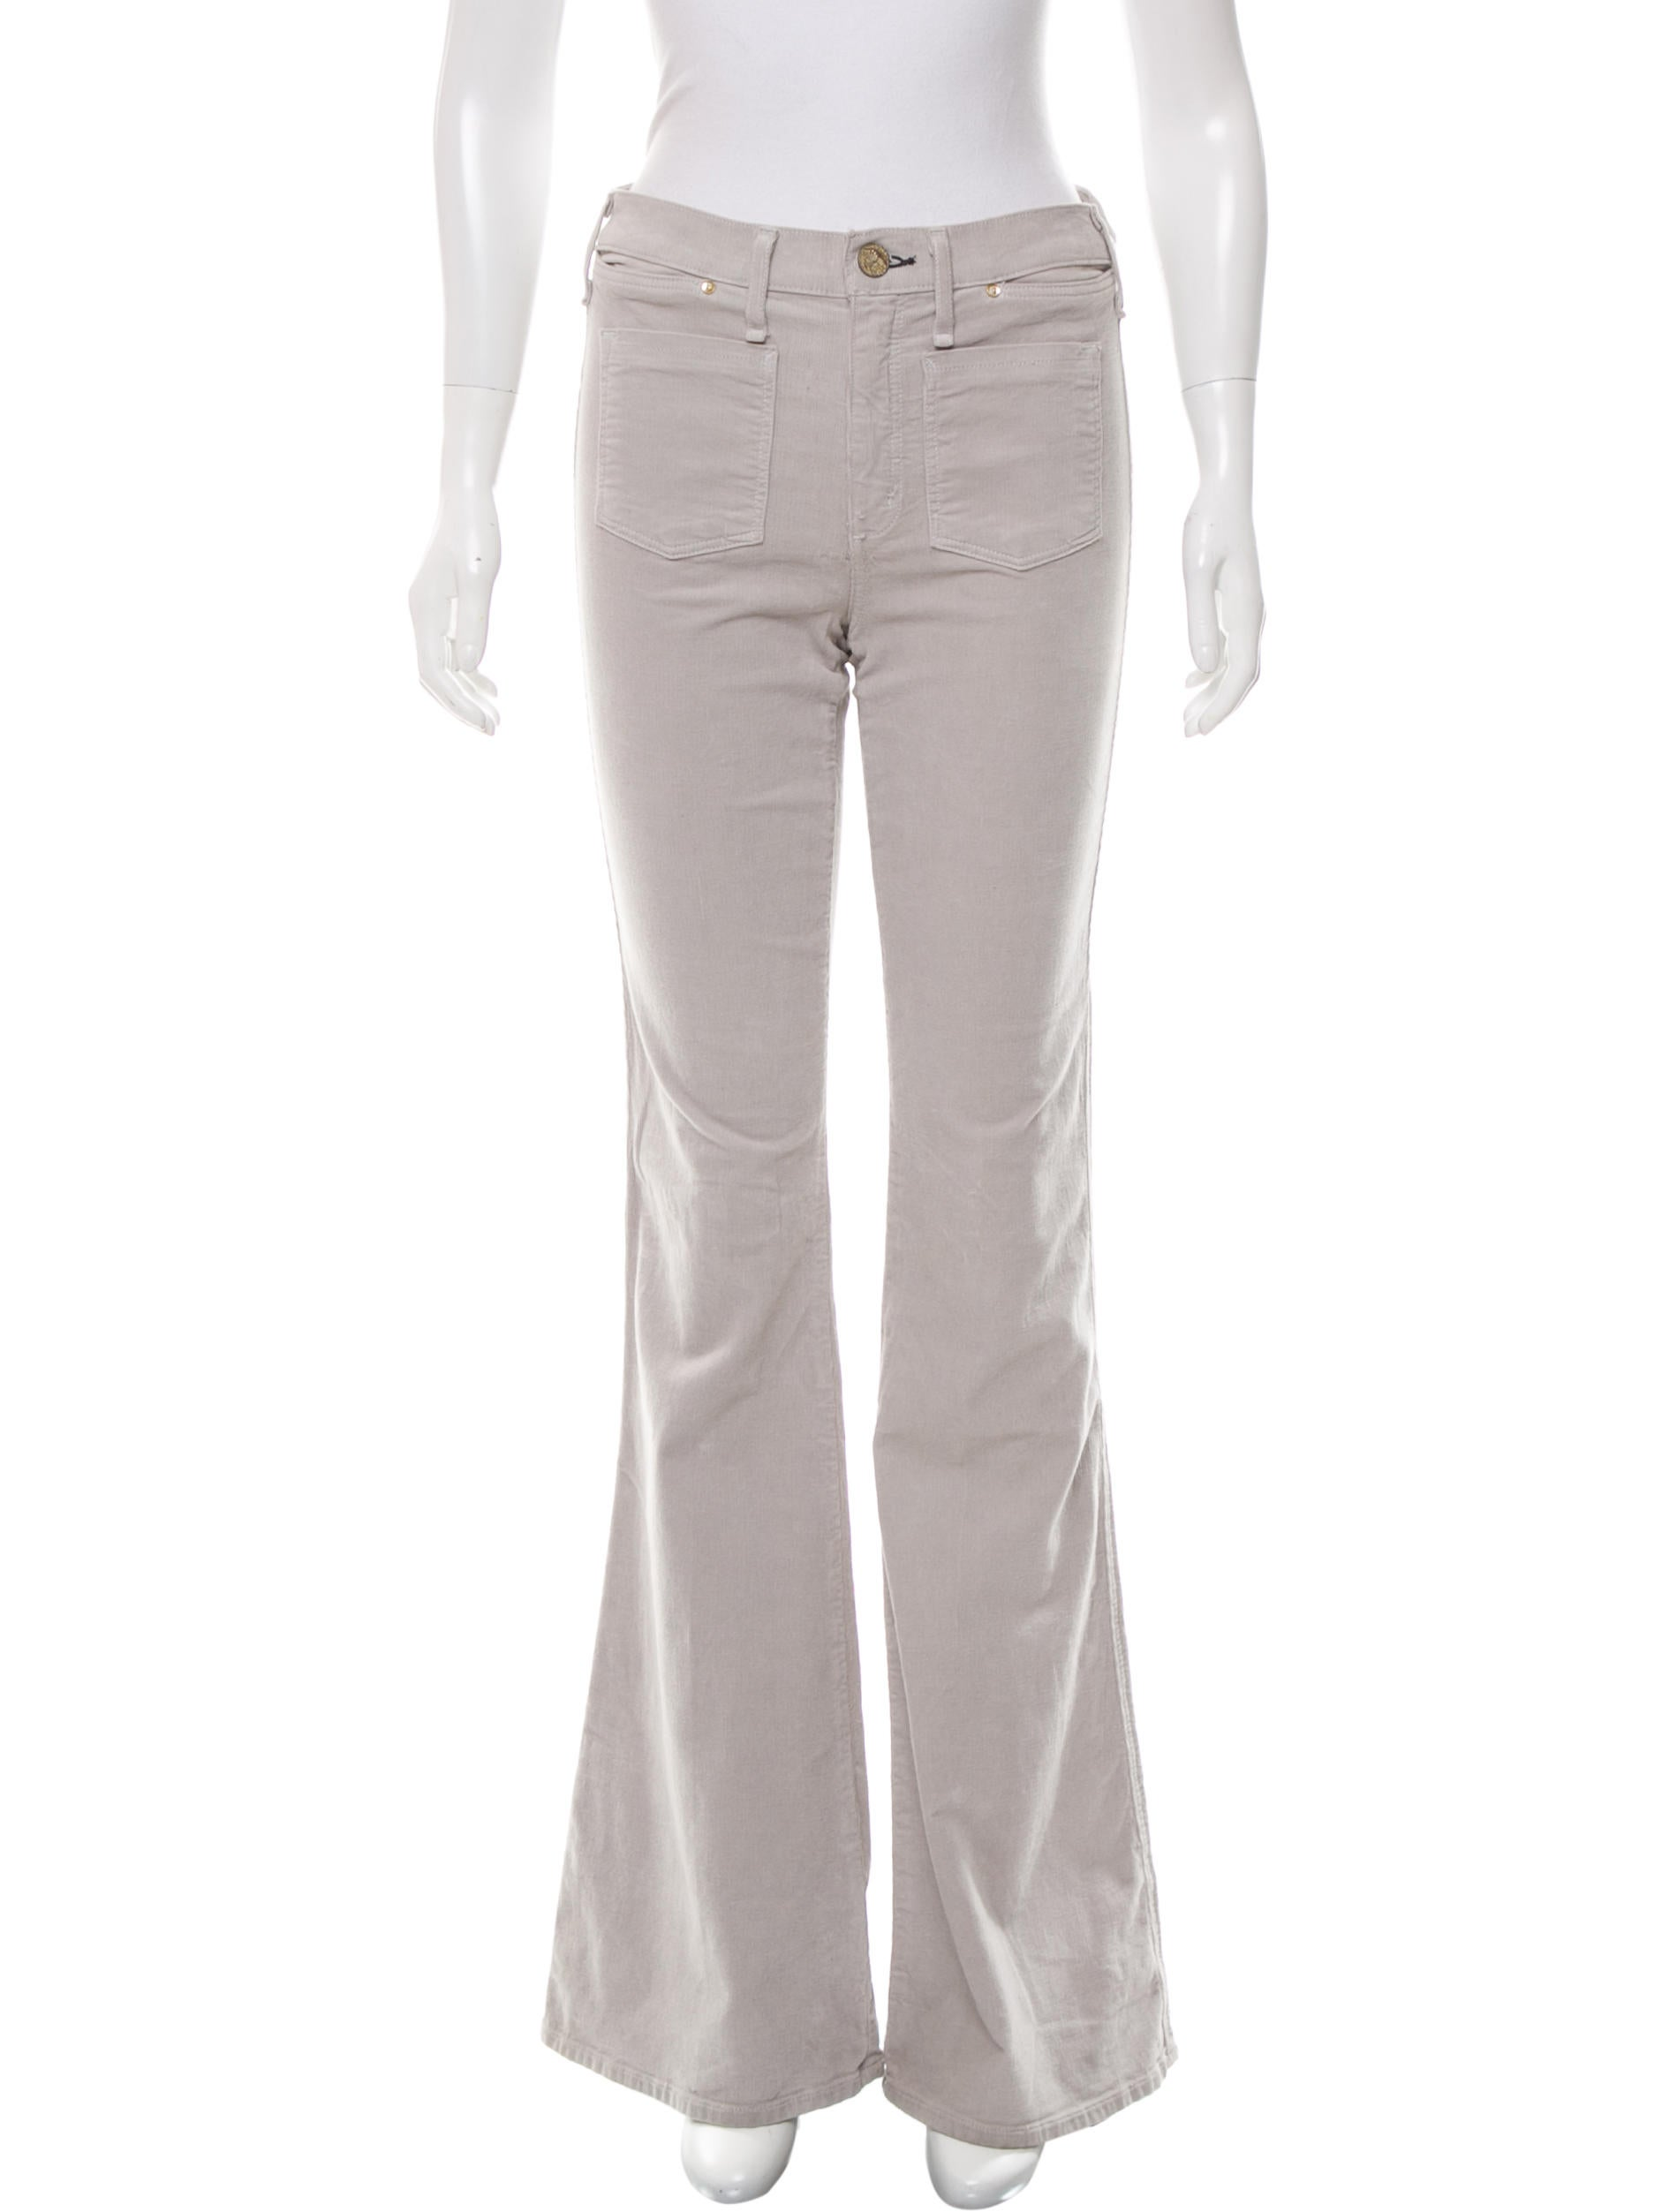 Cool Corduroy Pants Outfits For Women16 Ideas To Wear Corduroy